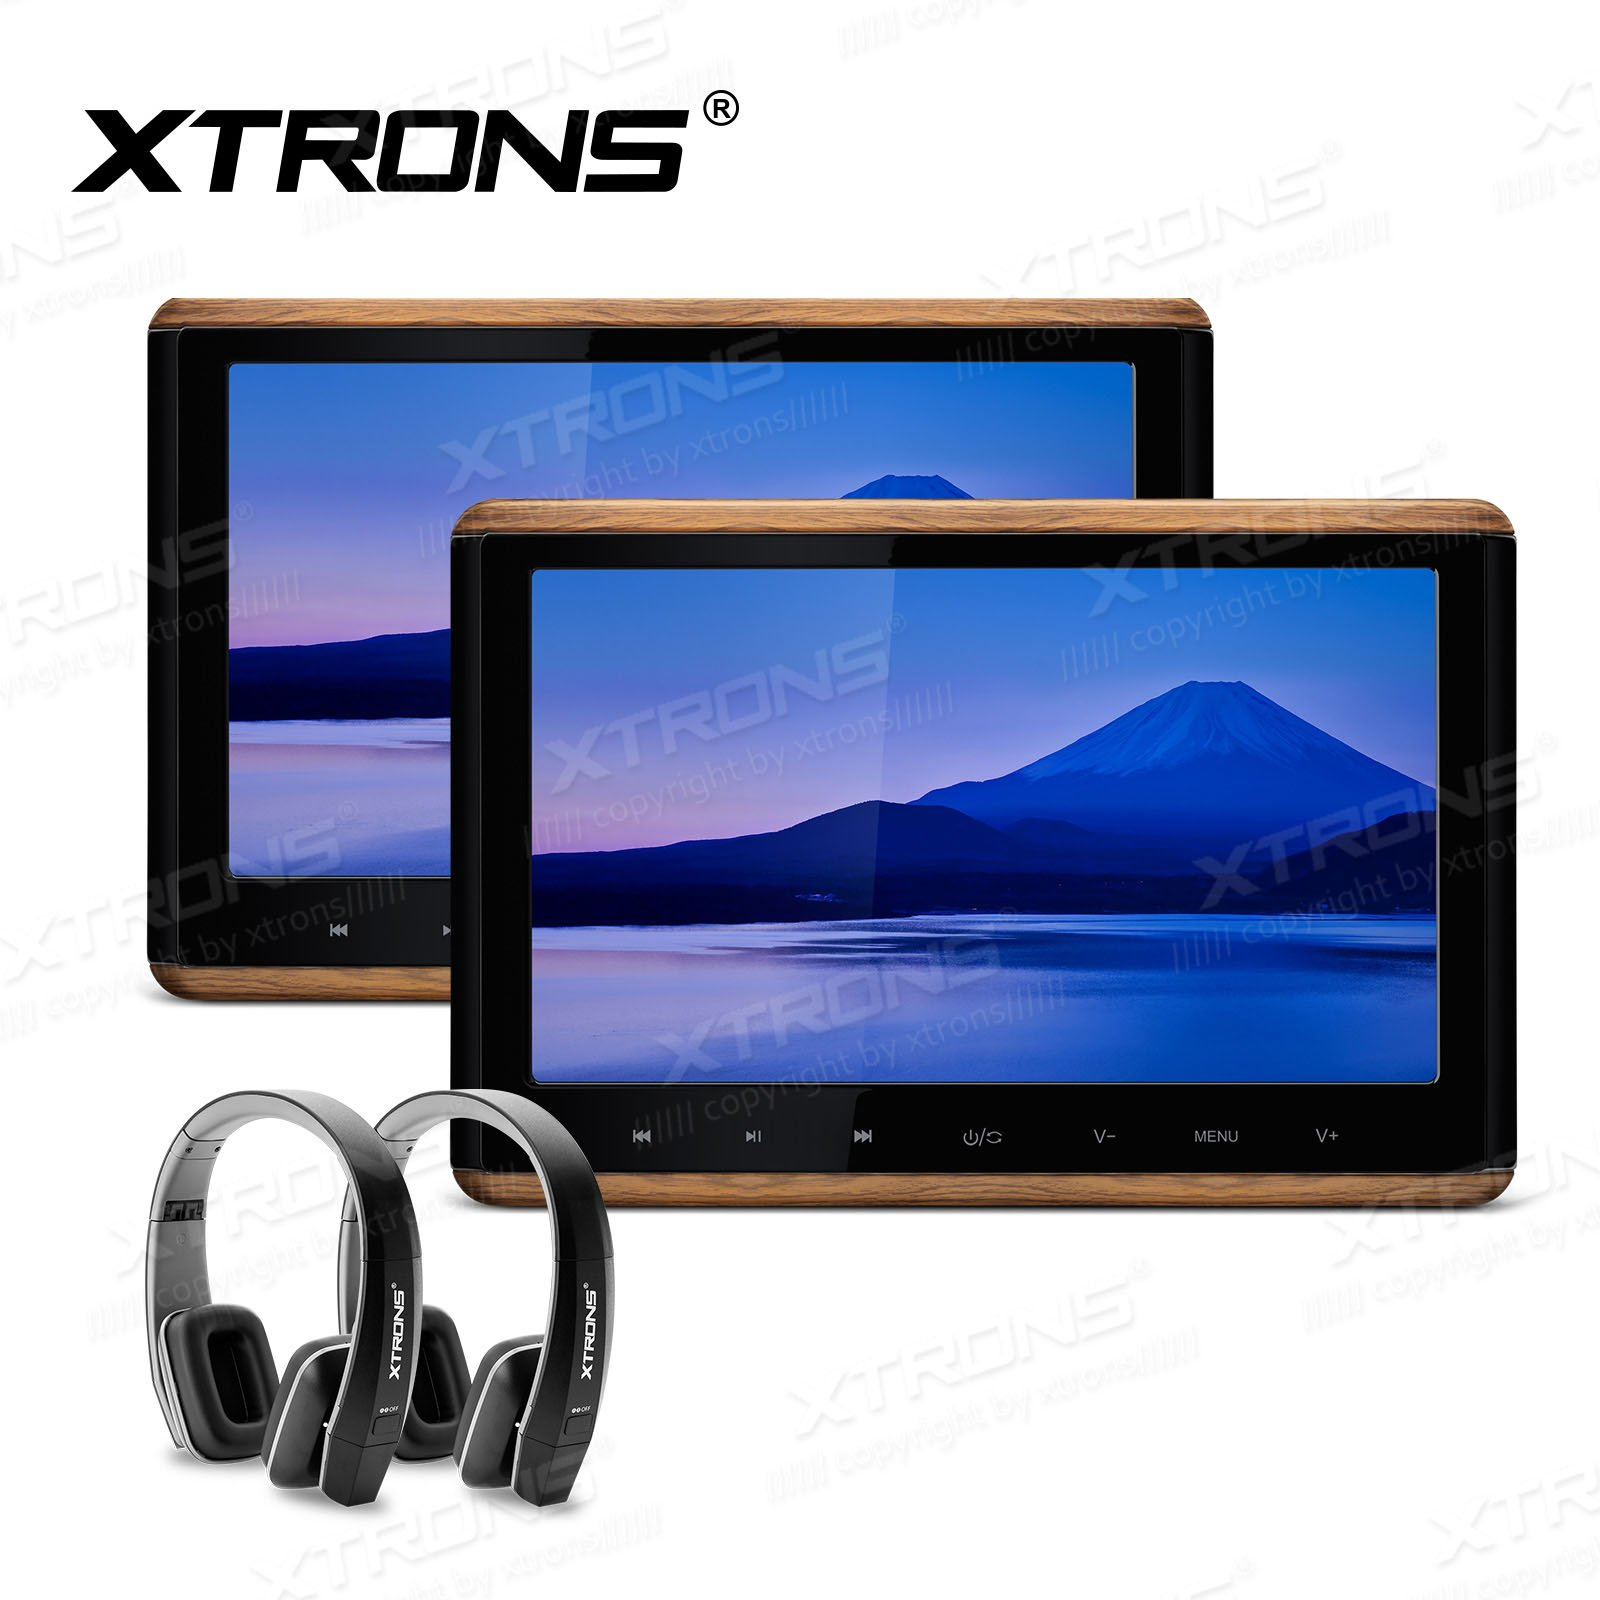 XTRONS 2 x 10.2 Inch Pair HD Digital TFT Screen Touch Panel 1080P Video Car Active Headrest DVD Player New Version Black IR Headphones by XTRONS